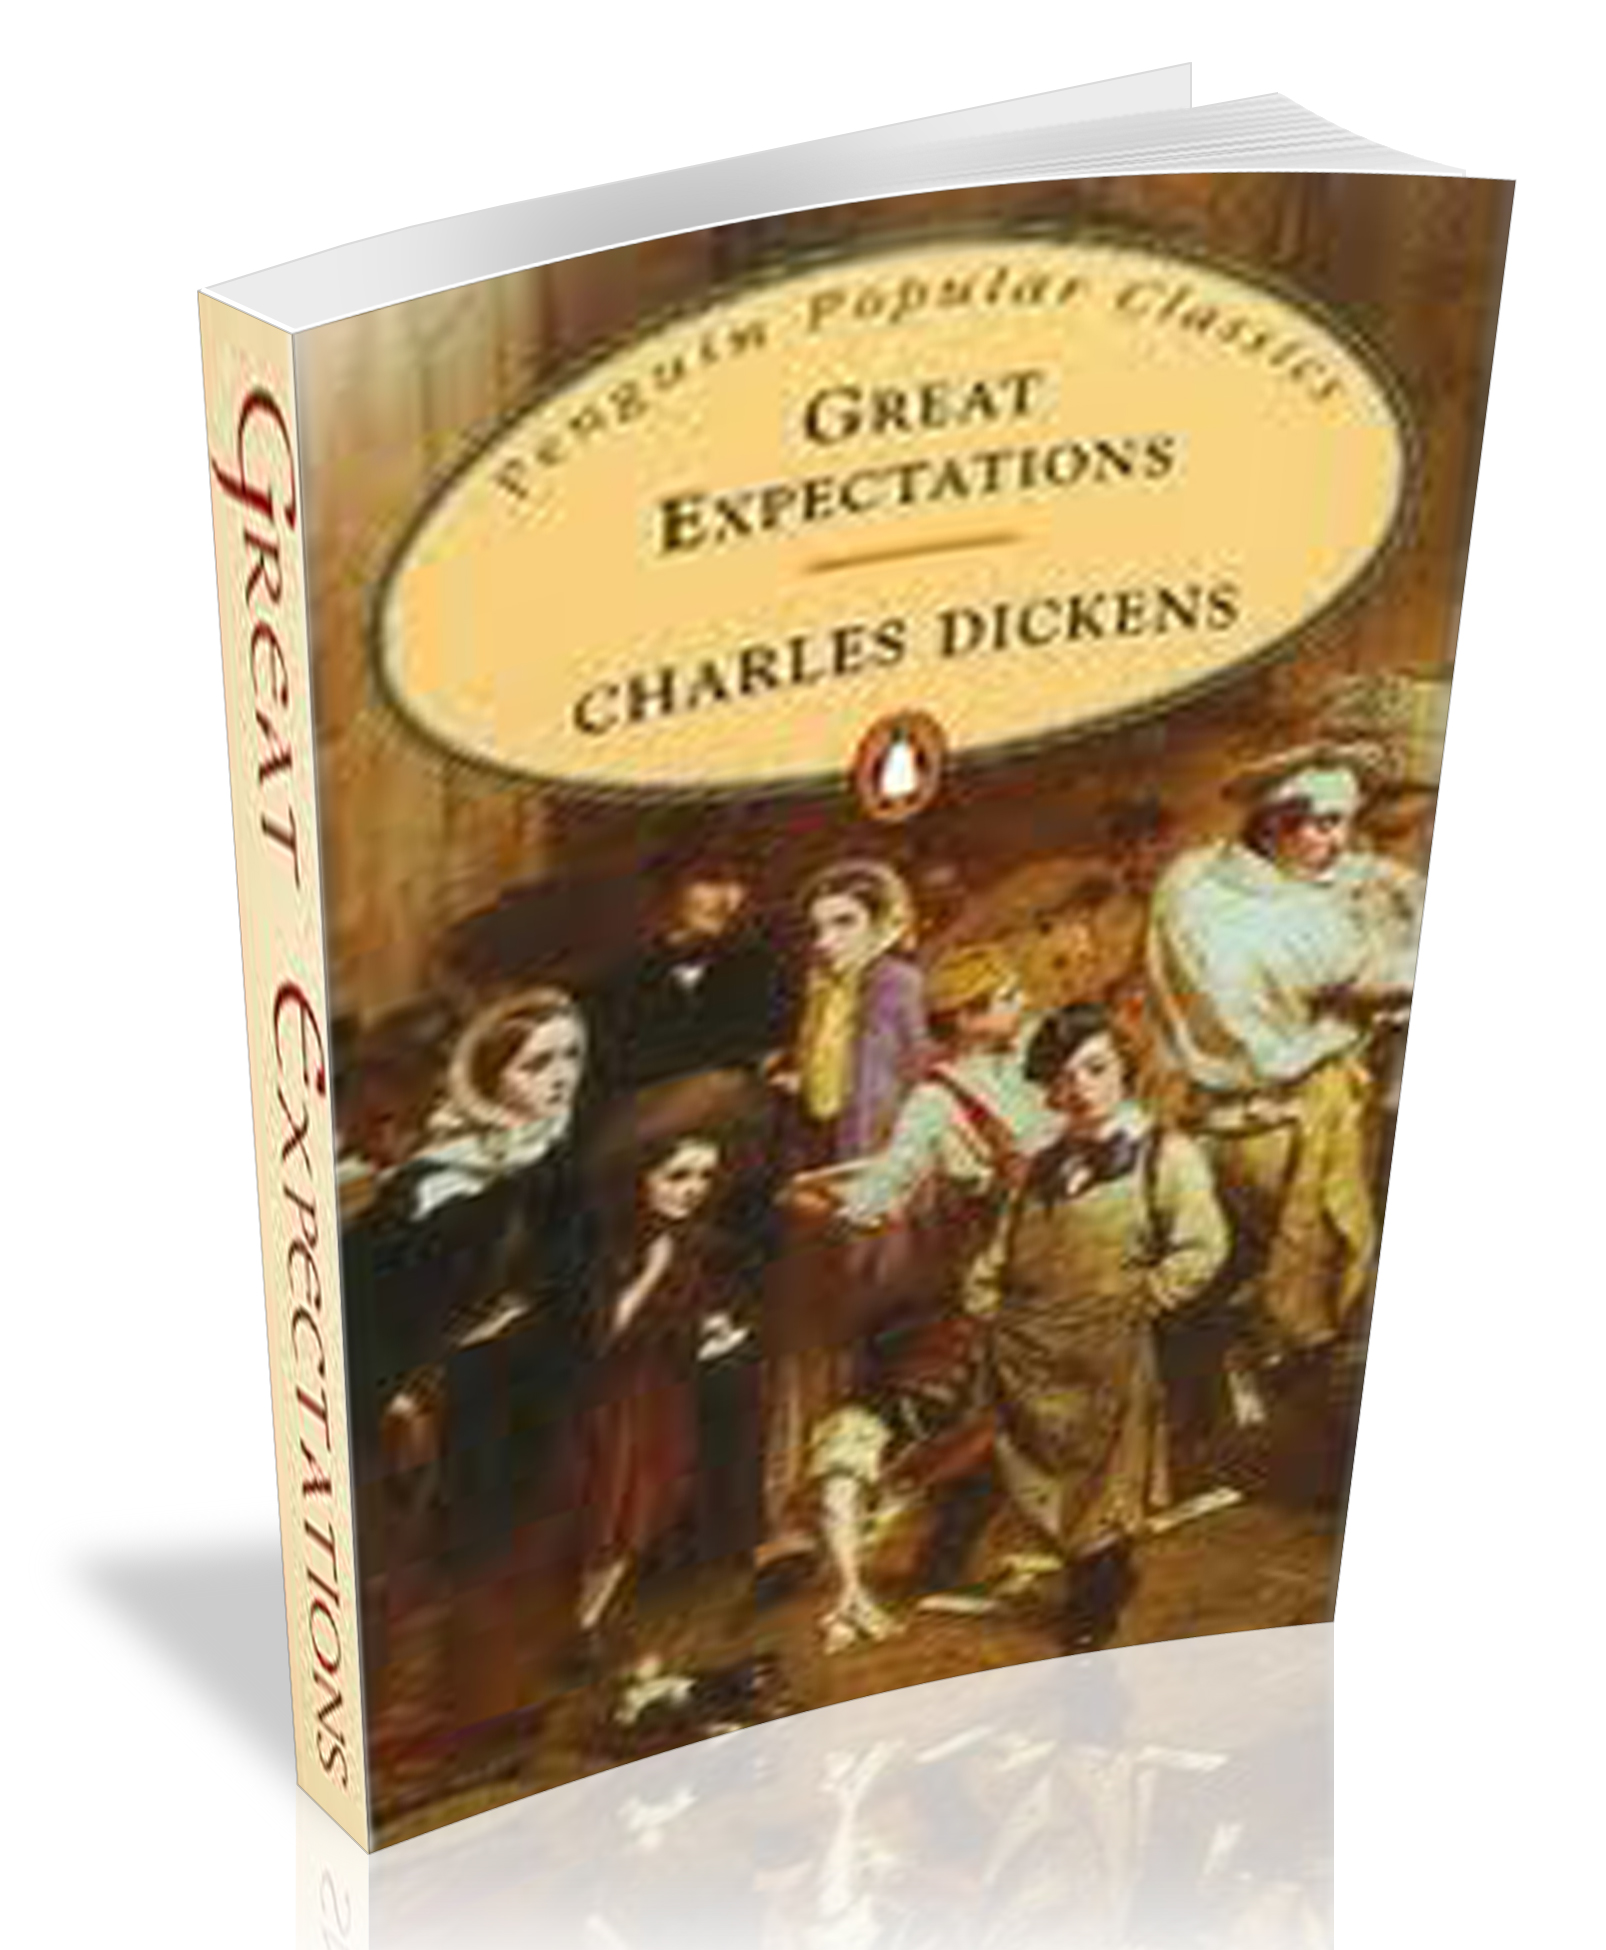 an overview of the characters in great expectations a novel by charles dickens Great expectations by charles dickens the main character of this novel is orphaned from the start summary chapter 1.